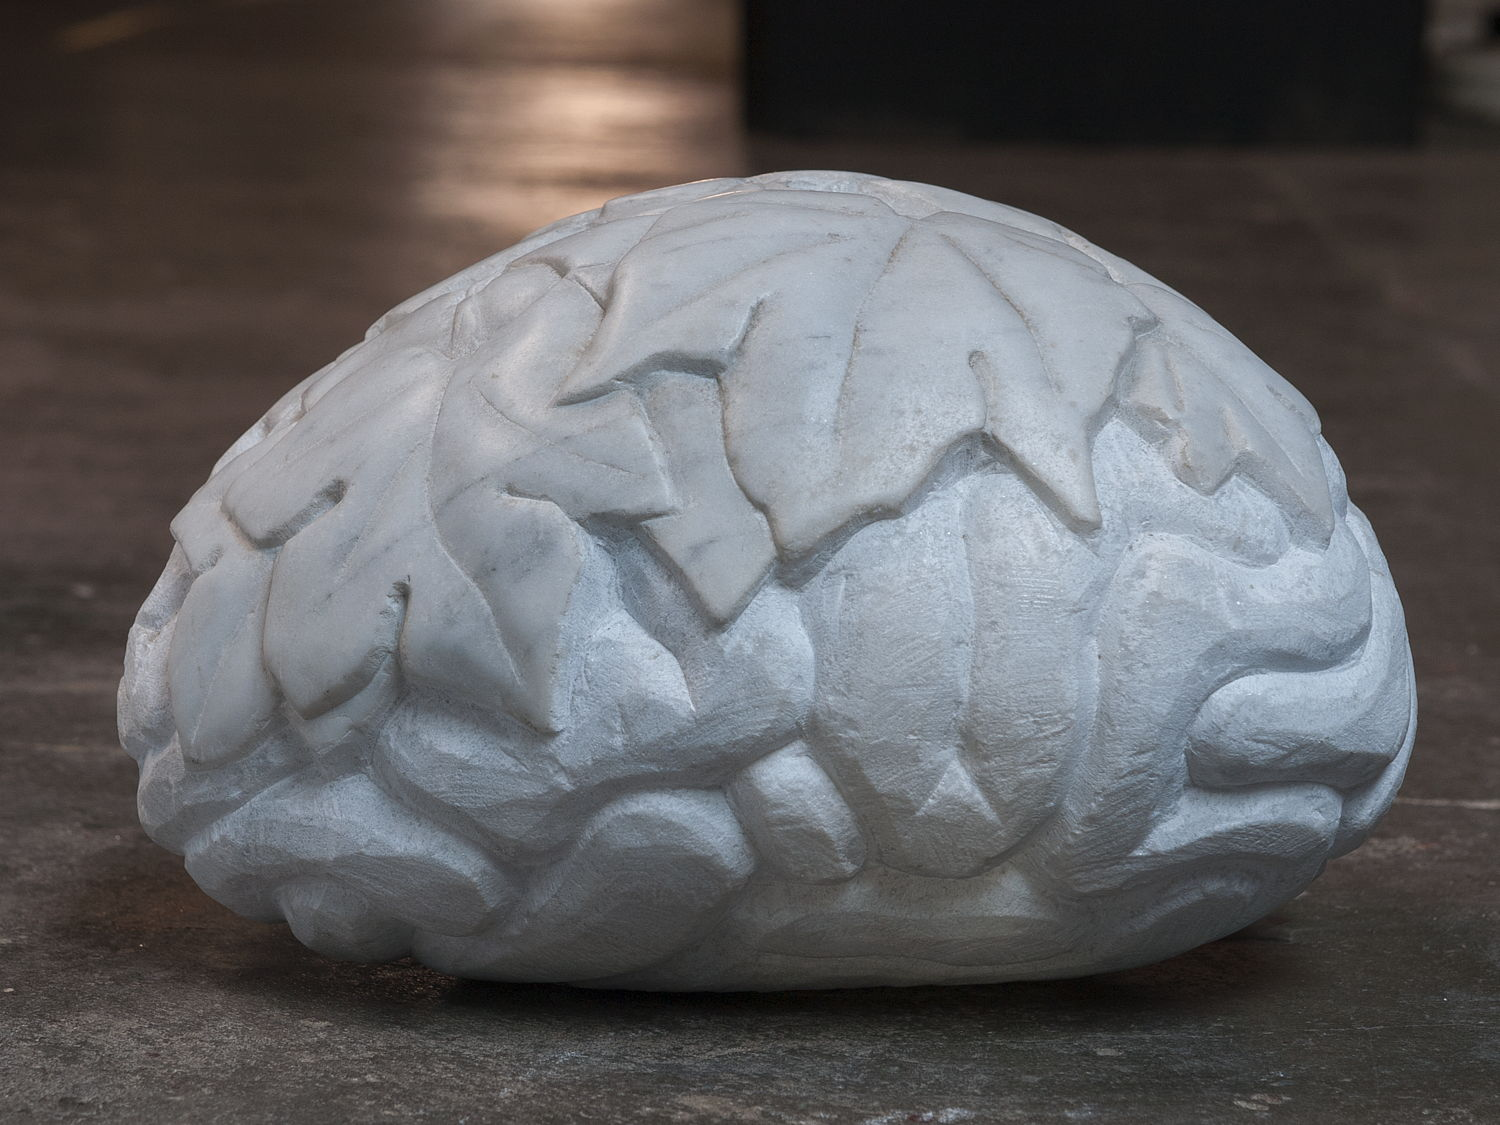 marble brains - marble sculpture